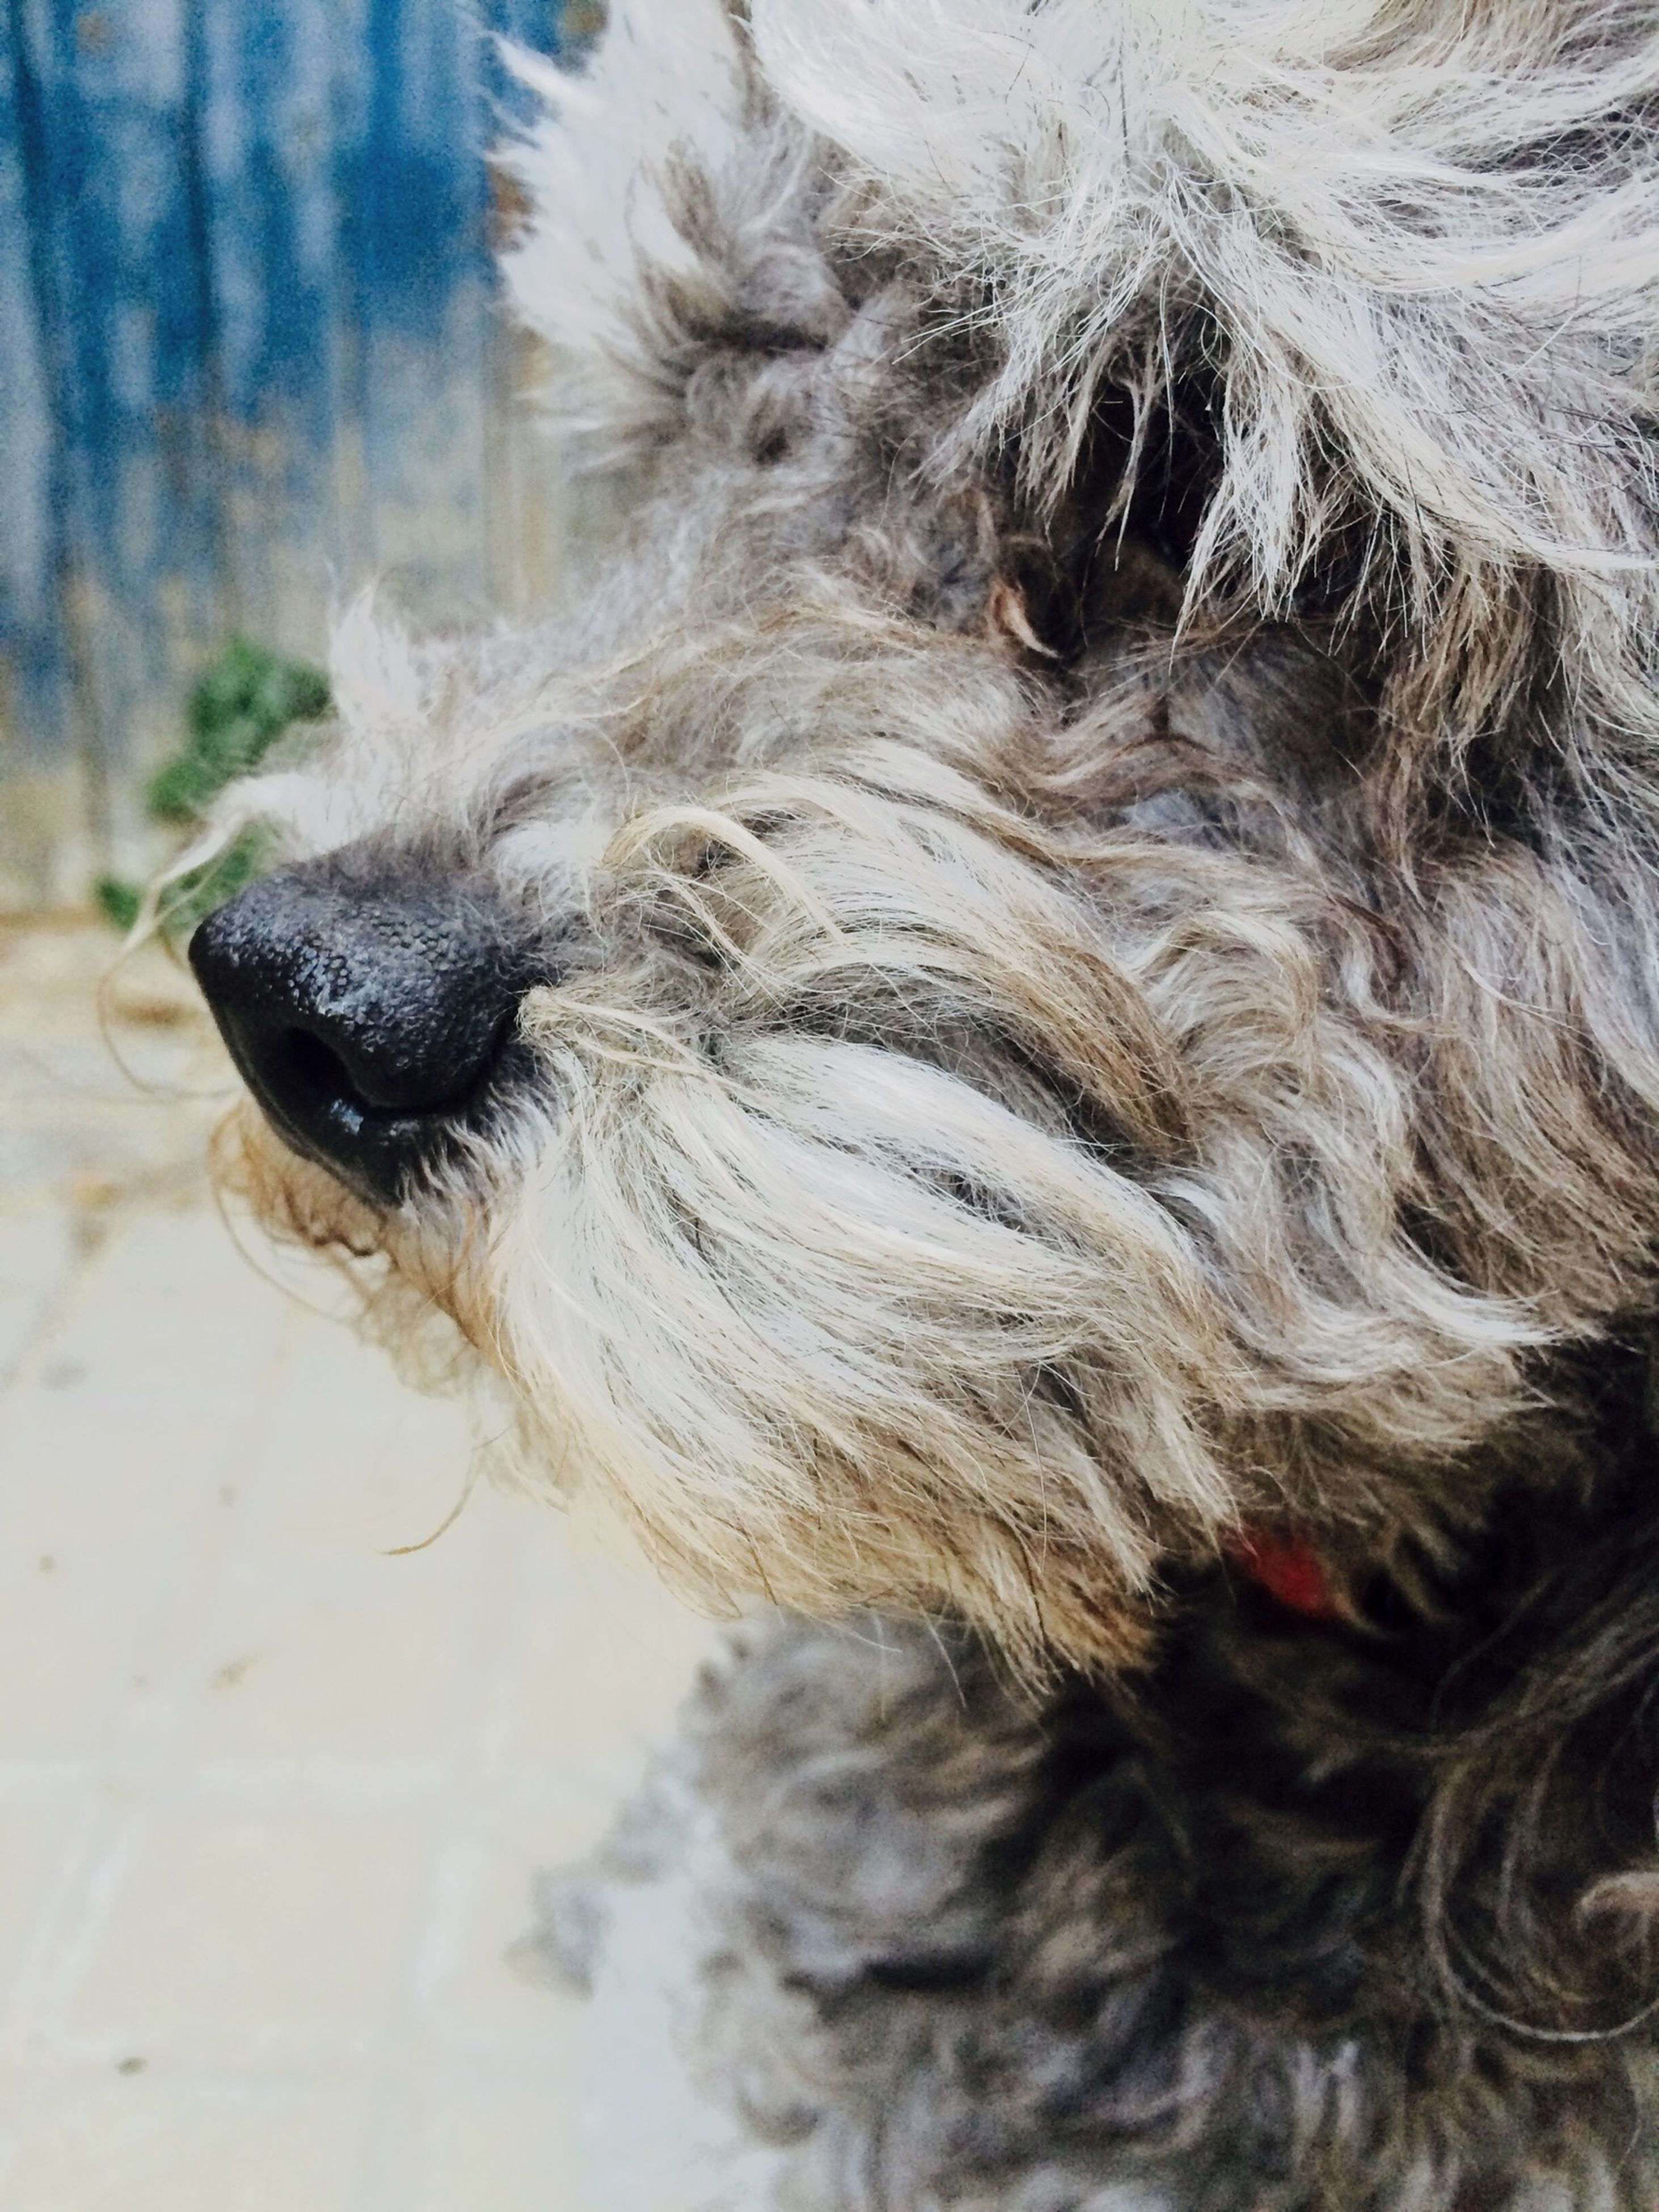 animal themes, one animal, mammal, pets, animal hair, domestic animals, dog, wildlife, animals in the wild, close-up, animal head, animal body part, zoology, no people, focus on foreground, day, animal, front view, high angle view, looking away